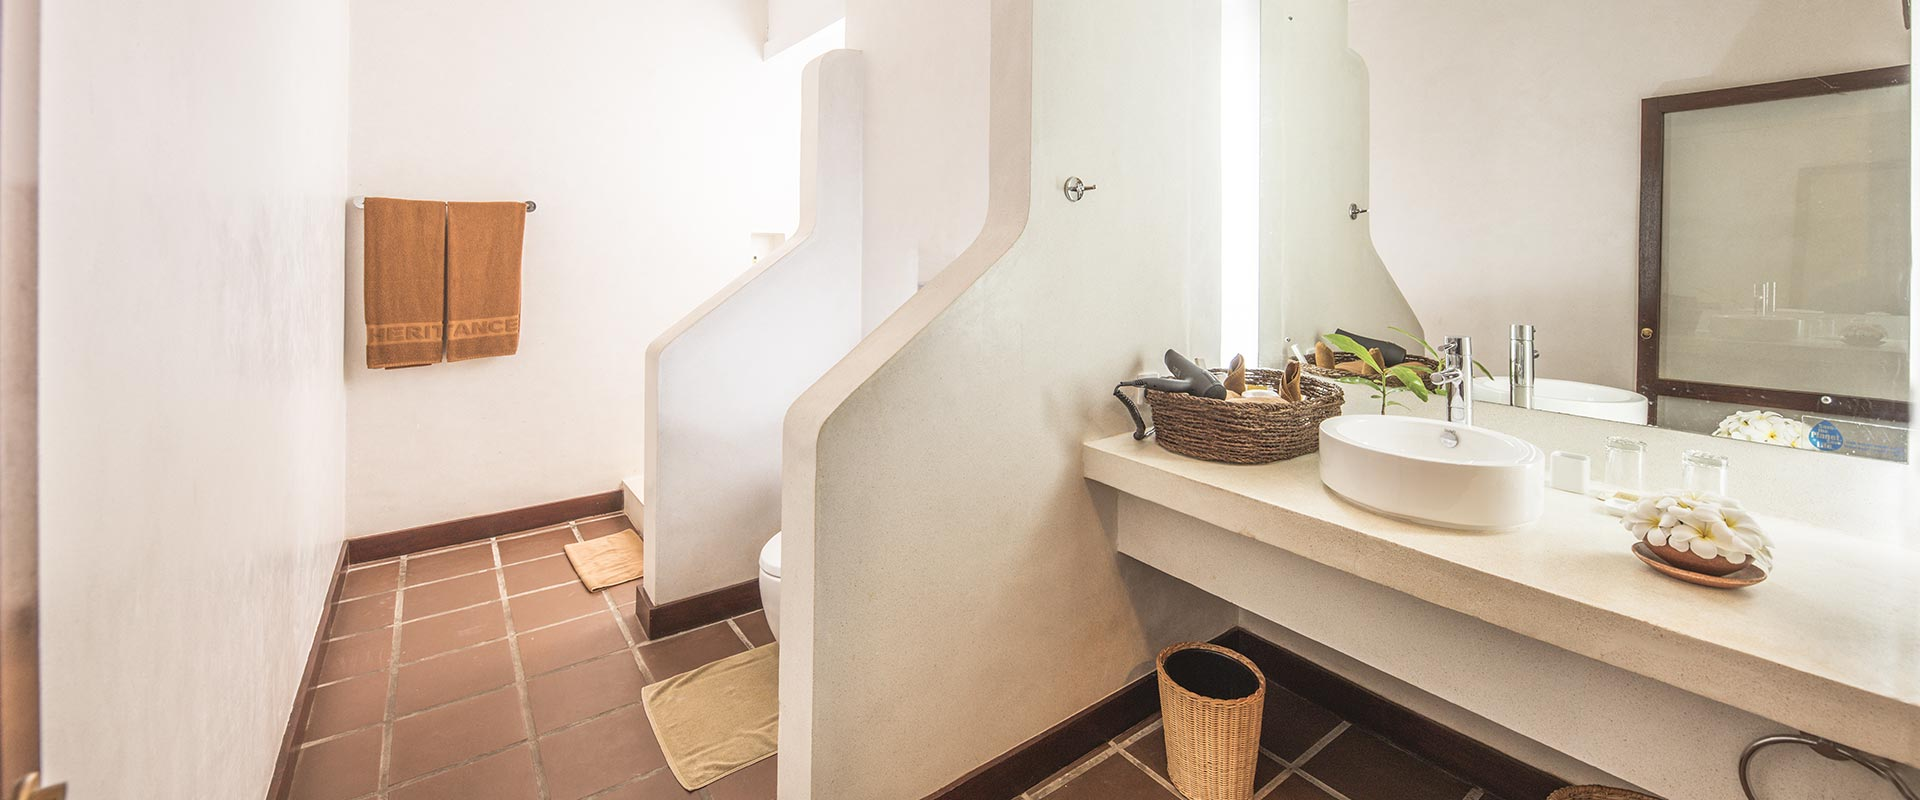 Heritance Ayurveda Bathroom Interior